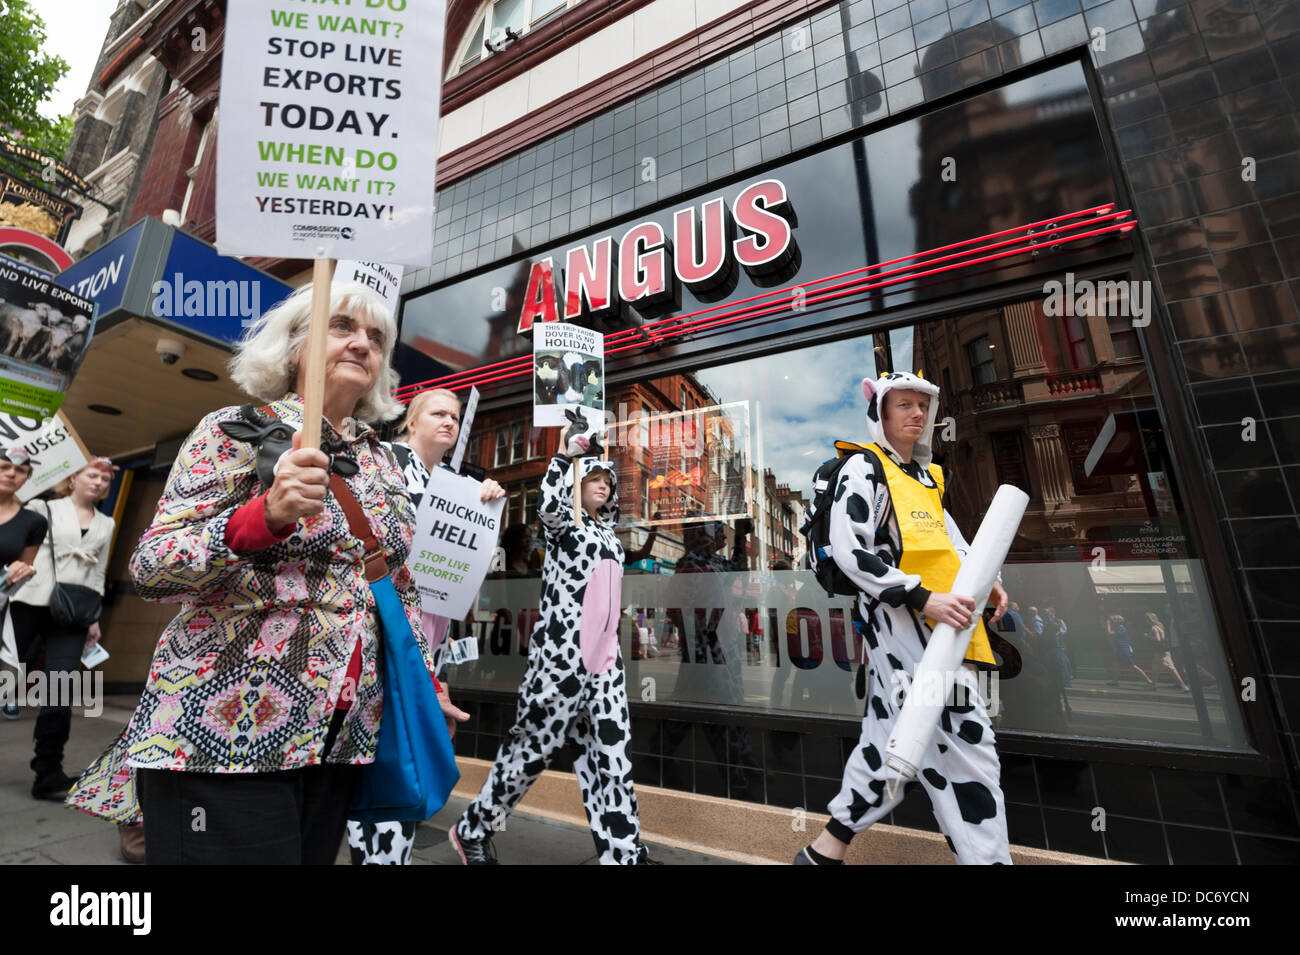 London, UK, 10th August, 2013. Compassion in World Farming supporters protest in Covent Garden in central London - Stock Image